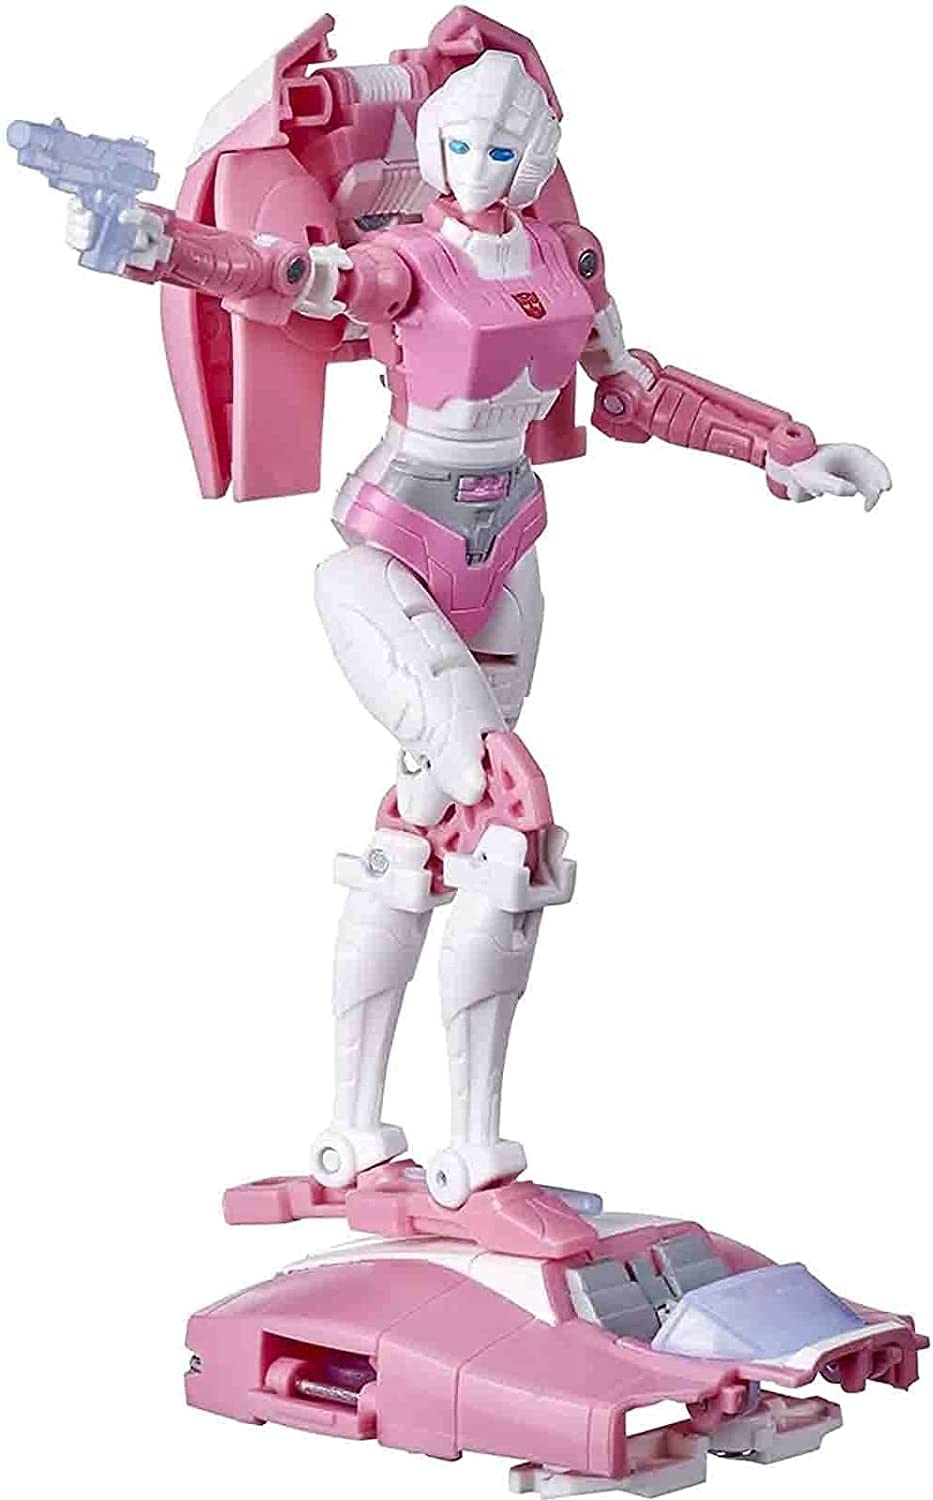 RSVPhandcrafted Trǎnsformérs Robot Toy Austin Mall The Height of KO Tr Max 84% OFF